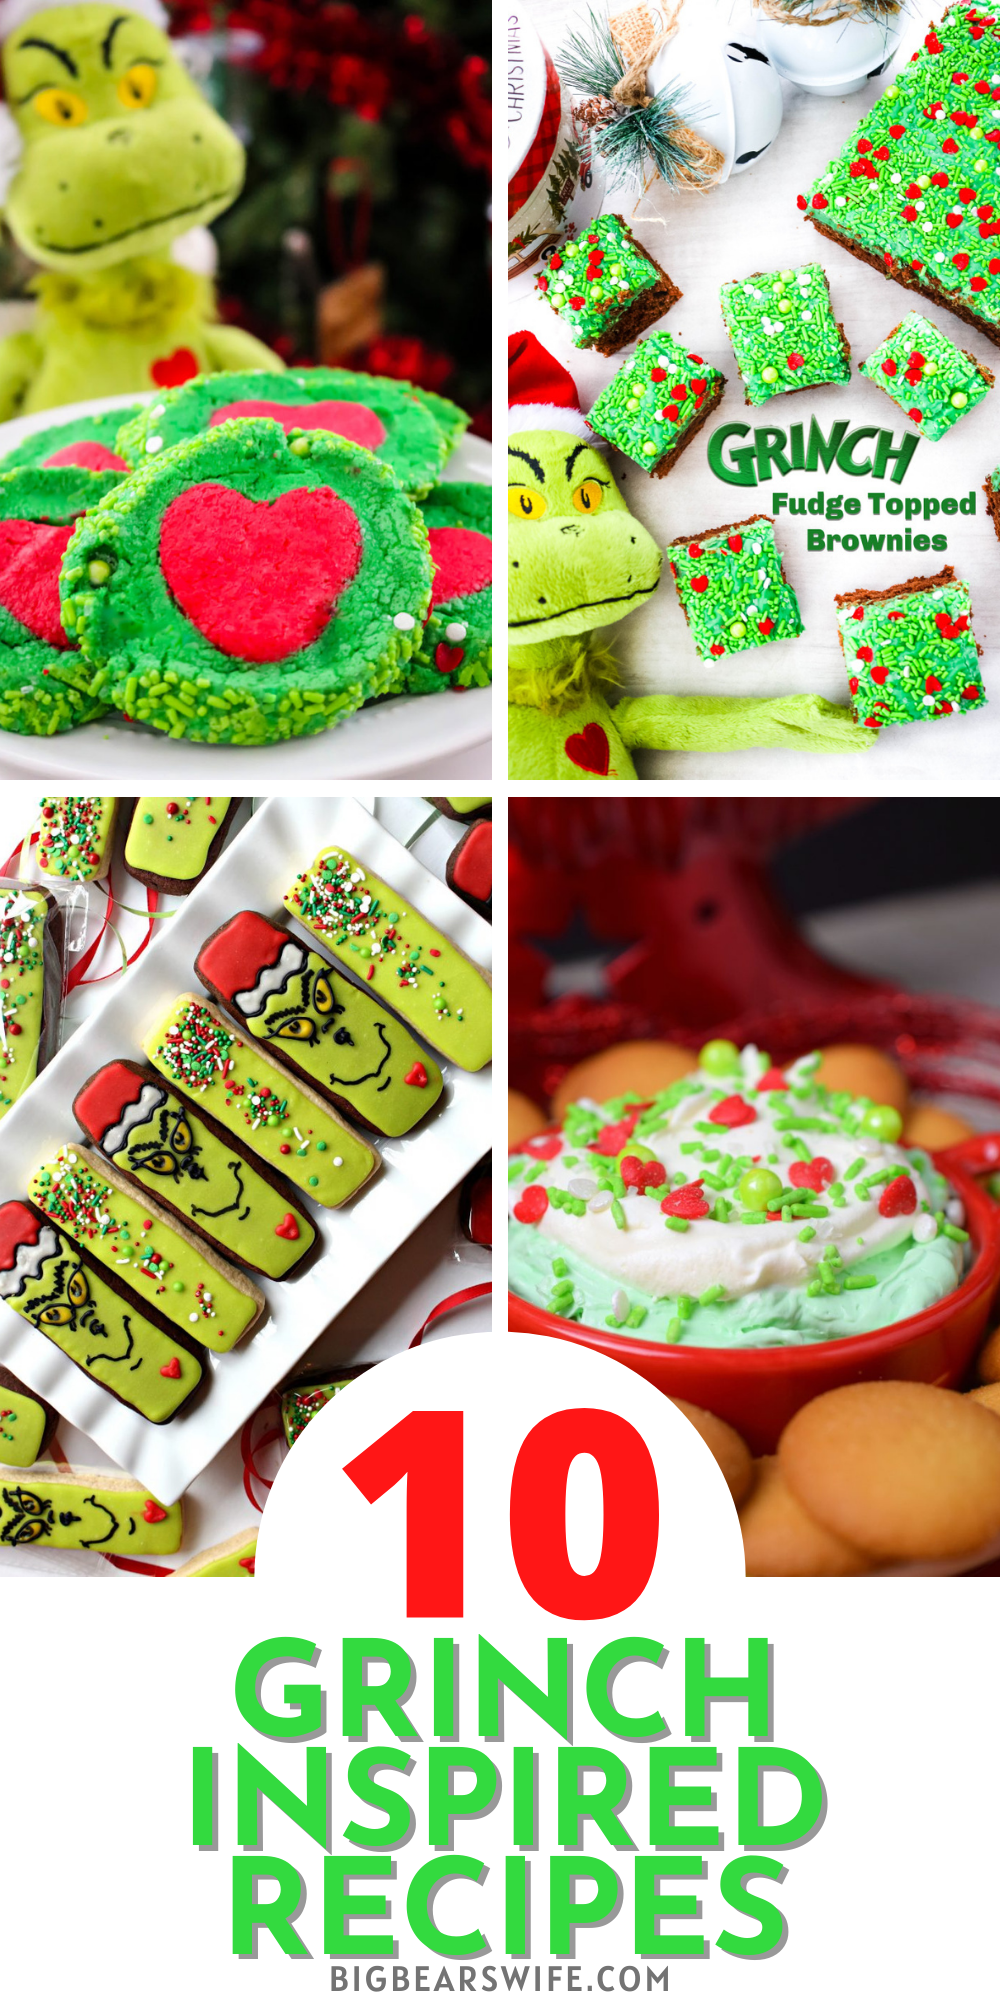 The Grinch is one of the most loved Holiday characters out there! These Grinch Inspired Recipes are proving that he's got the Christmas spirit - You'll love checking out 10 of the BEST Grinch Inspired recipes here! via @bigbearswife